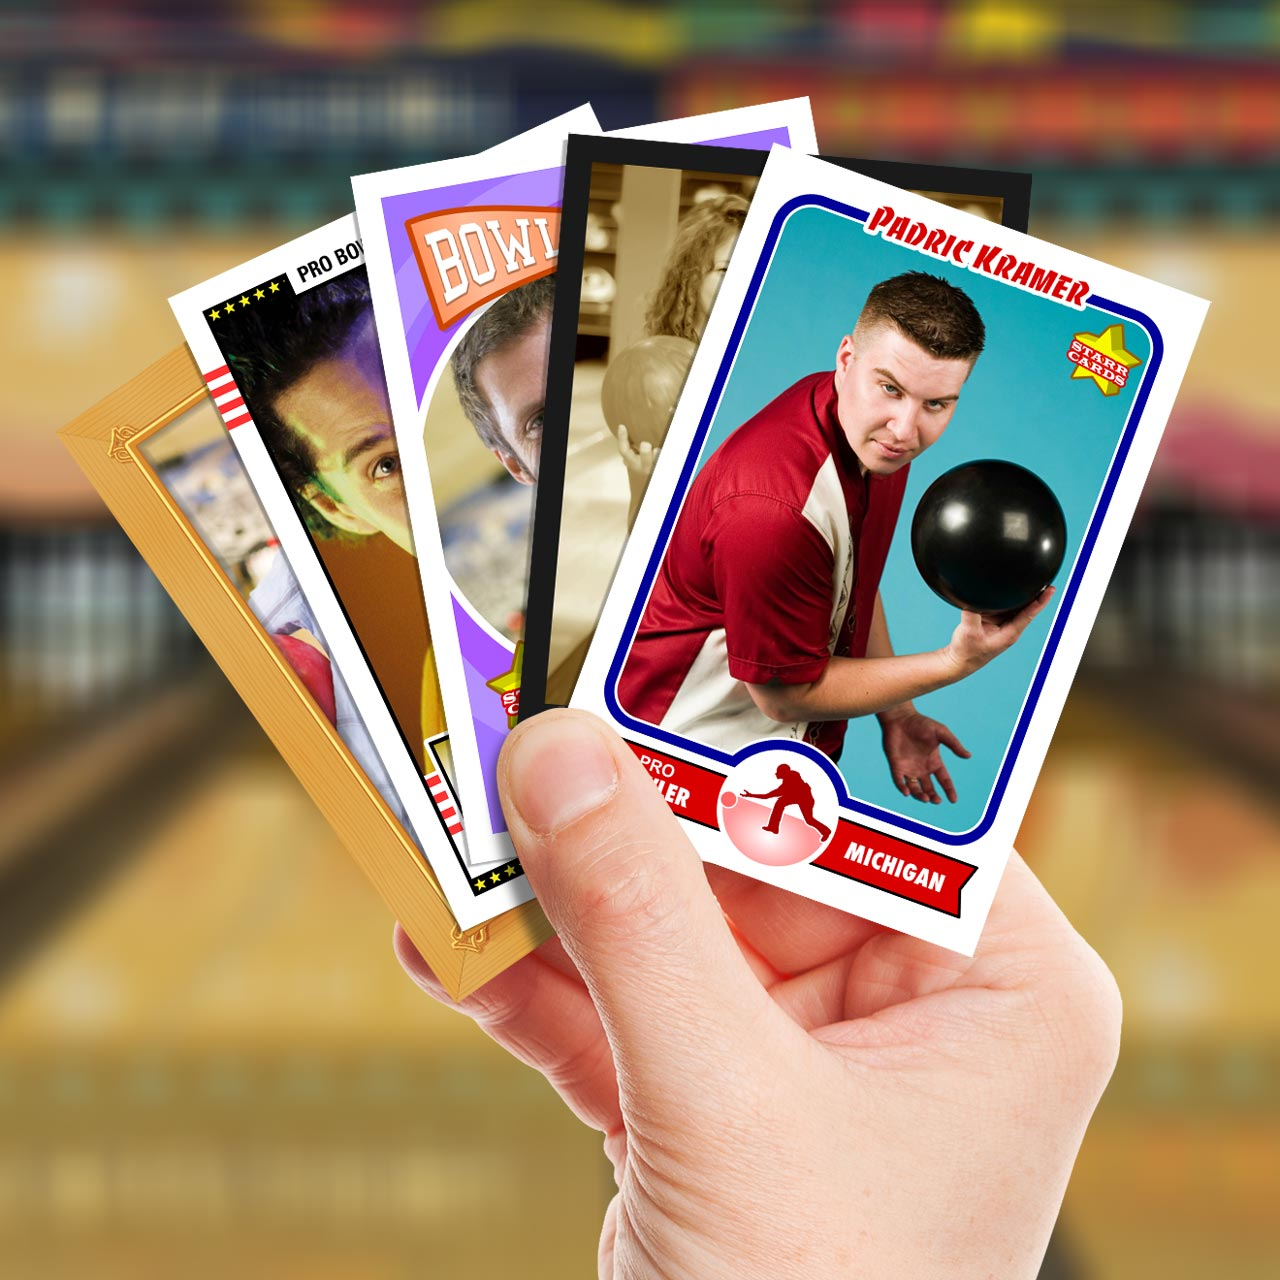 Make your own bowling card with Starr Cards.